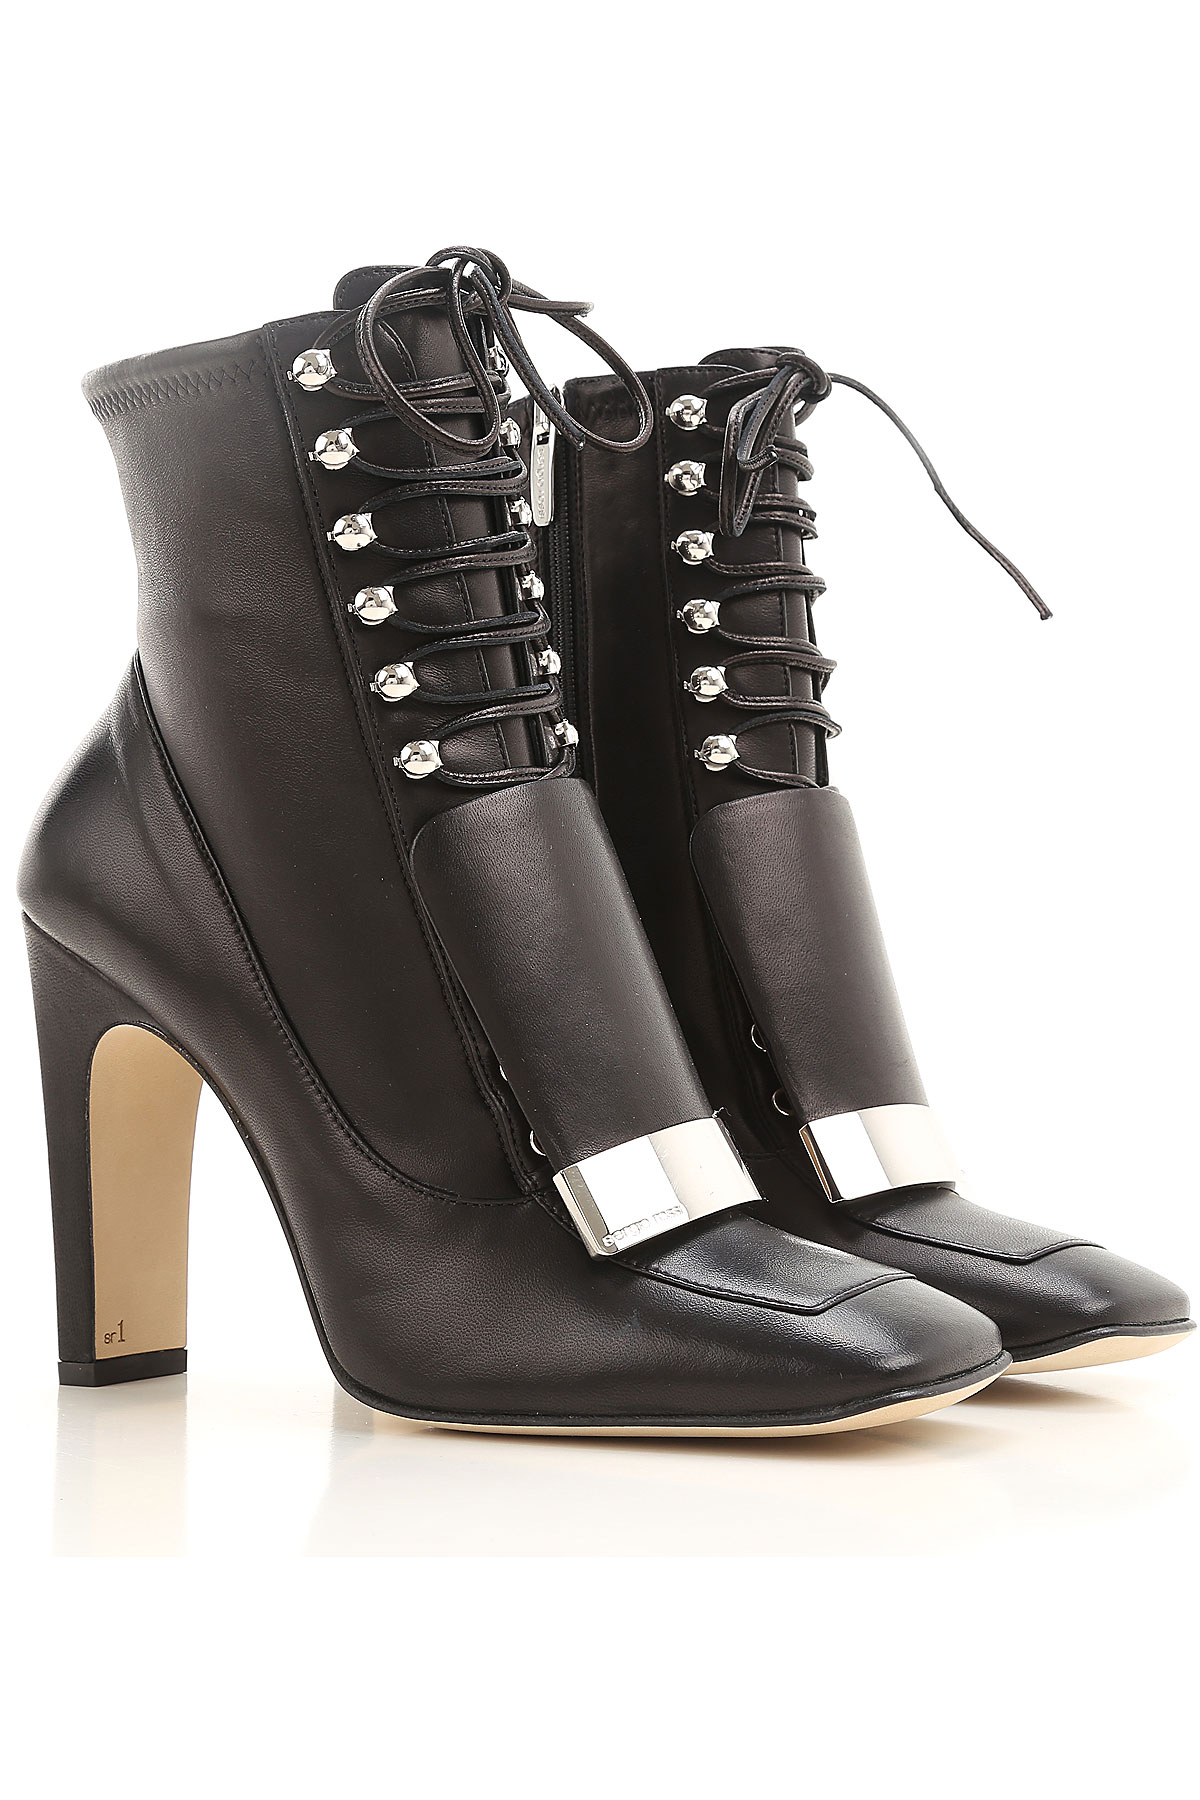 Image of Sergio Rossi Boots for Women, Booties, Black, Leather, 2017, 10 6 7 8 9